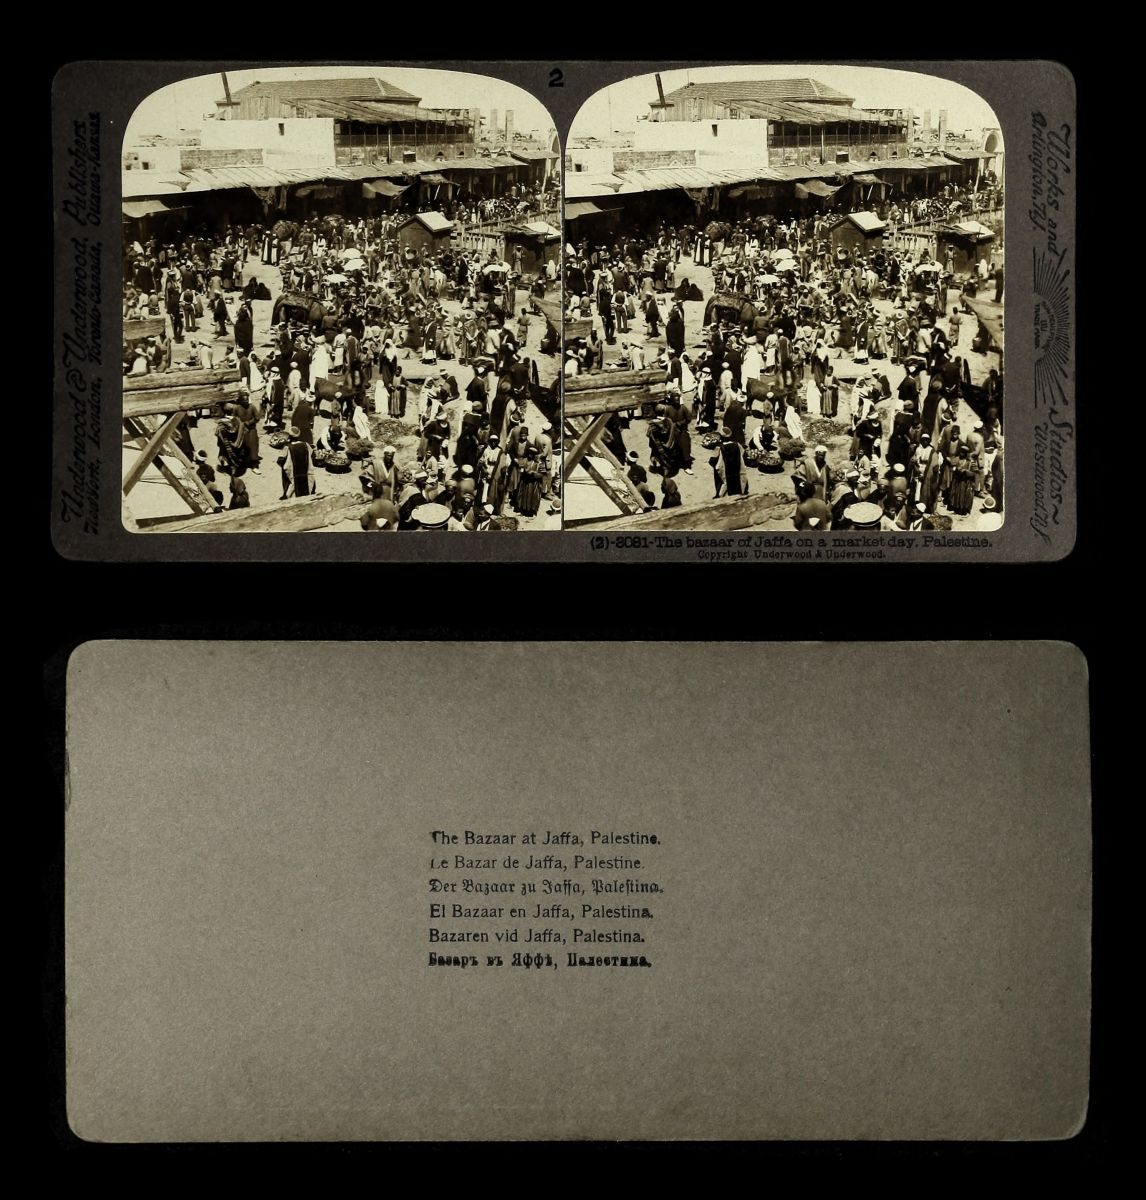 Fig. 15 The bazaar of Jaffa on a market day, from The Holy Land through the Stereoscope by Underwood & Underwood, 1896-1905